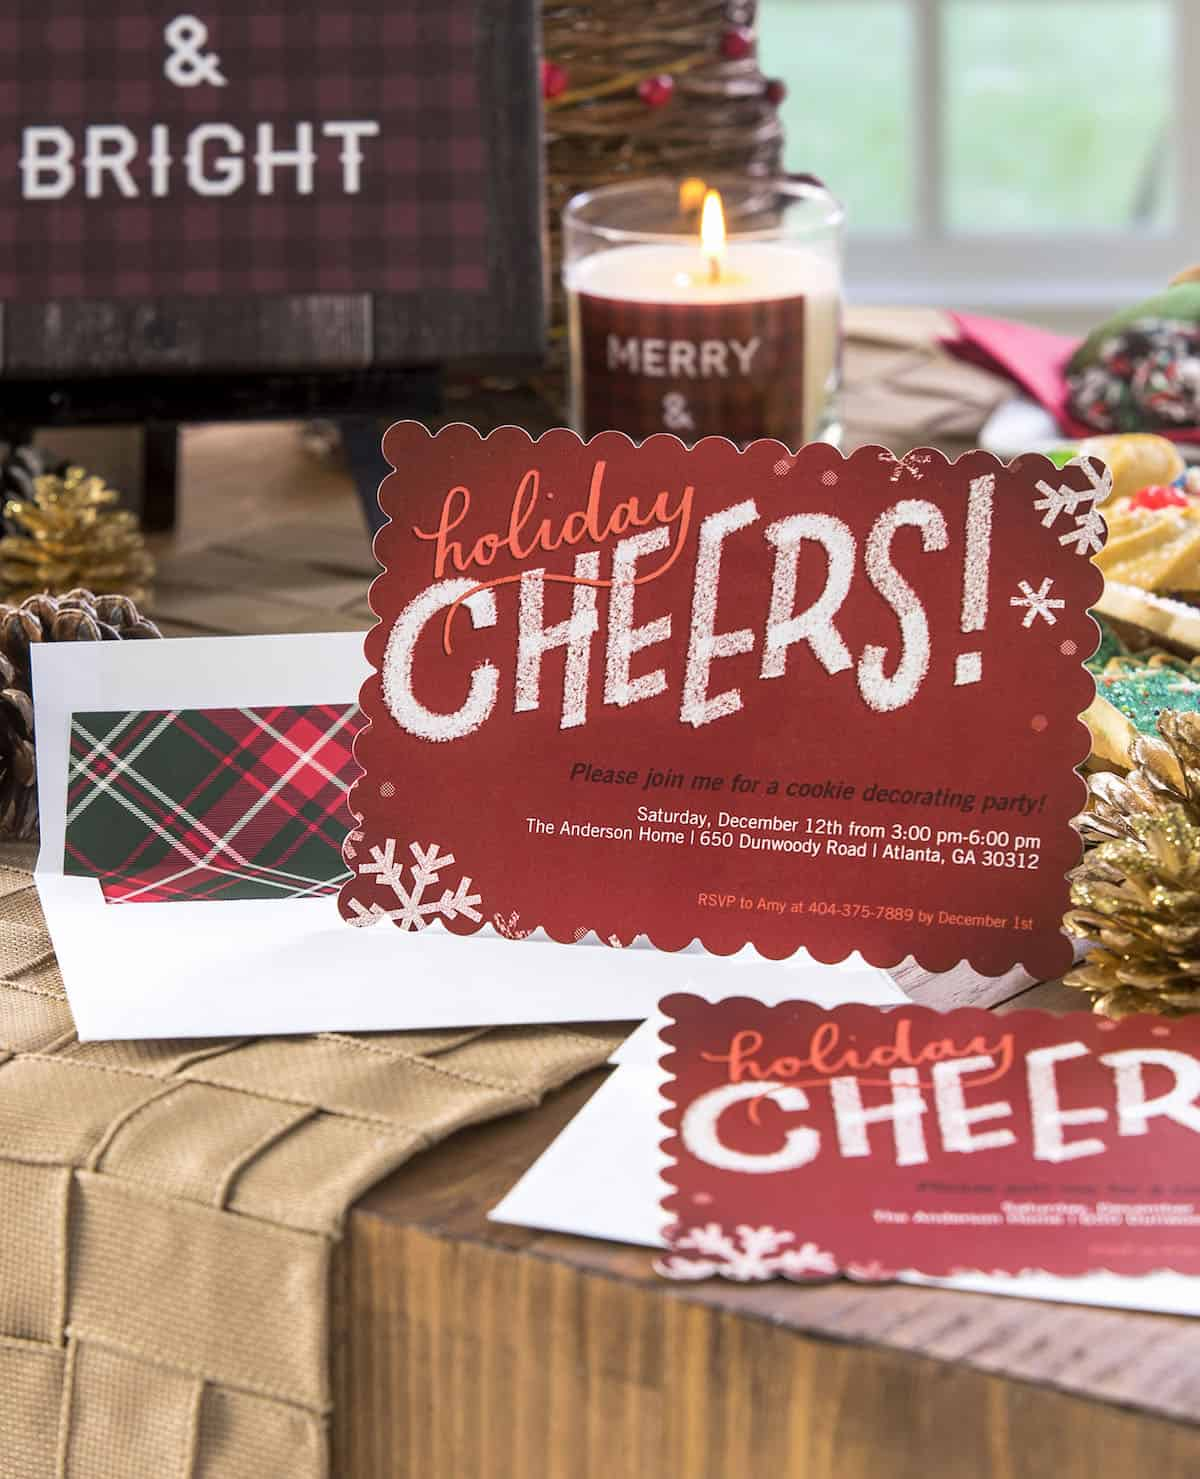 Use my free printable, Mod Podge photo transfer medium, and personalized Shutterfly printed items to have the best plaid themed cookie exchange ever!